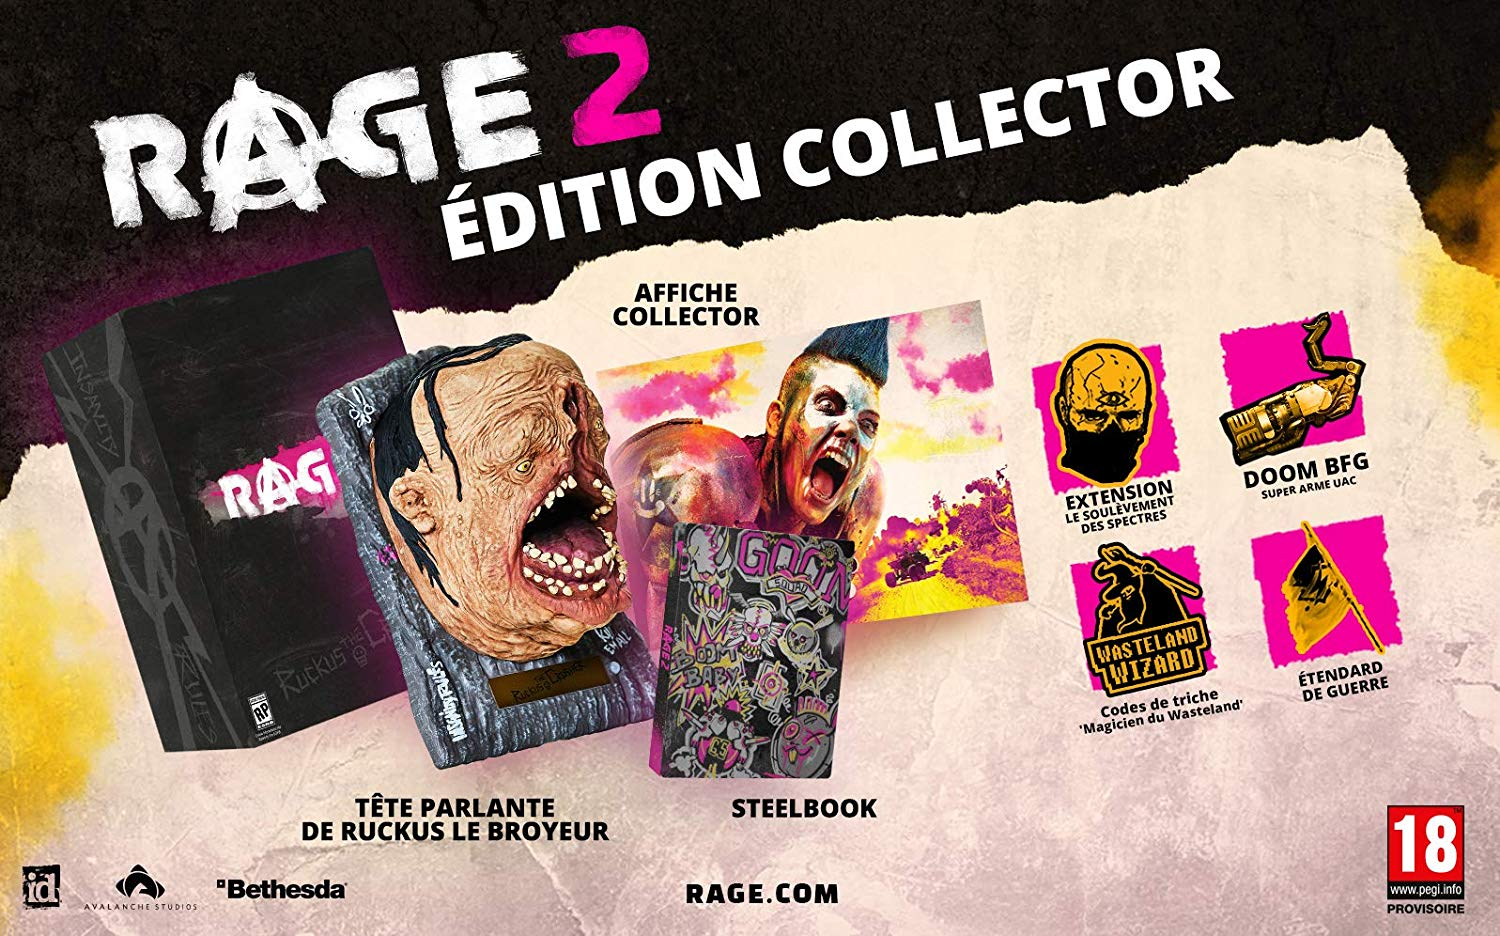 Rage 2 Edition Collector avec Steelbook